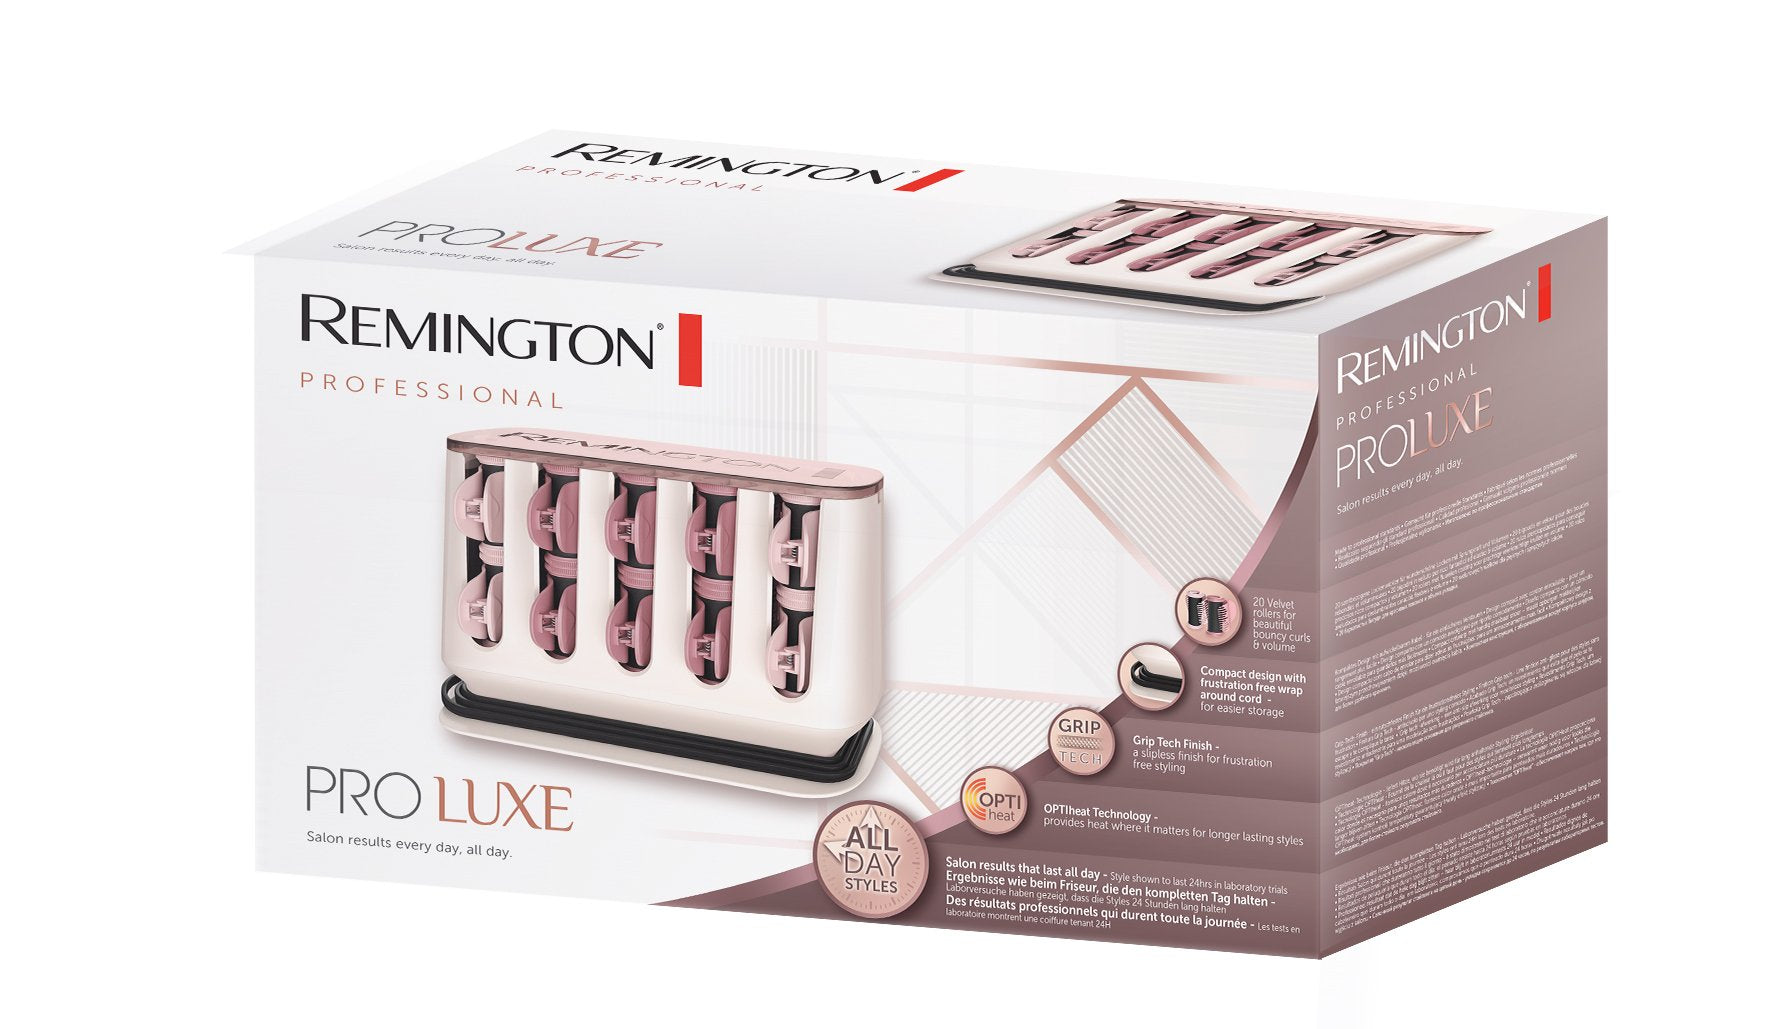 Remington H9100 Proluxe Heated Rollers Hair Stylers - Remington - Pazarska